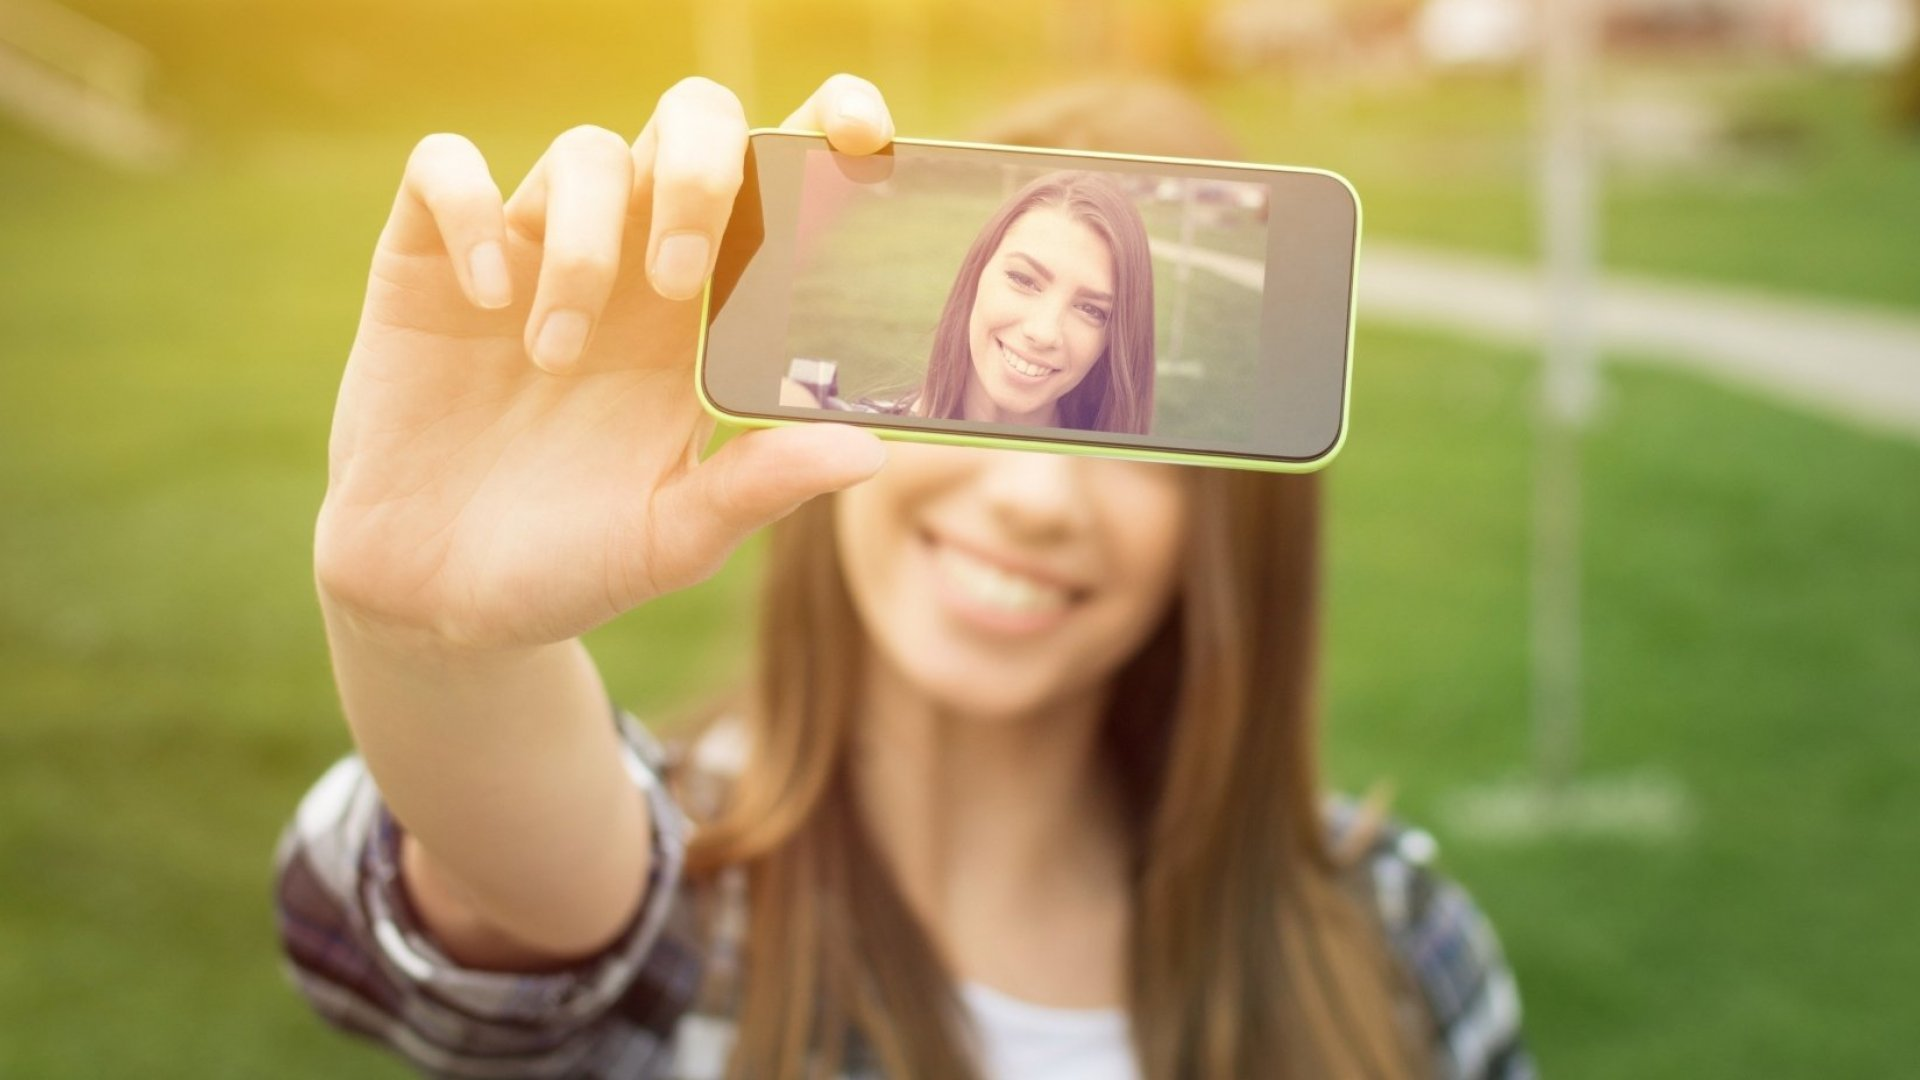 Your Selfie Can Give Away Your Gender, Age, Location, and Other Personal Data, Says This Hacking Expert